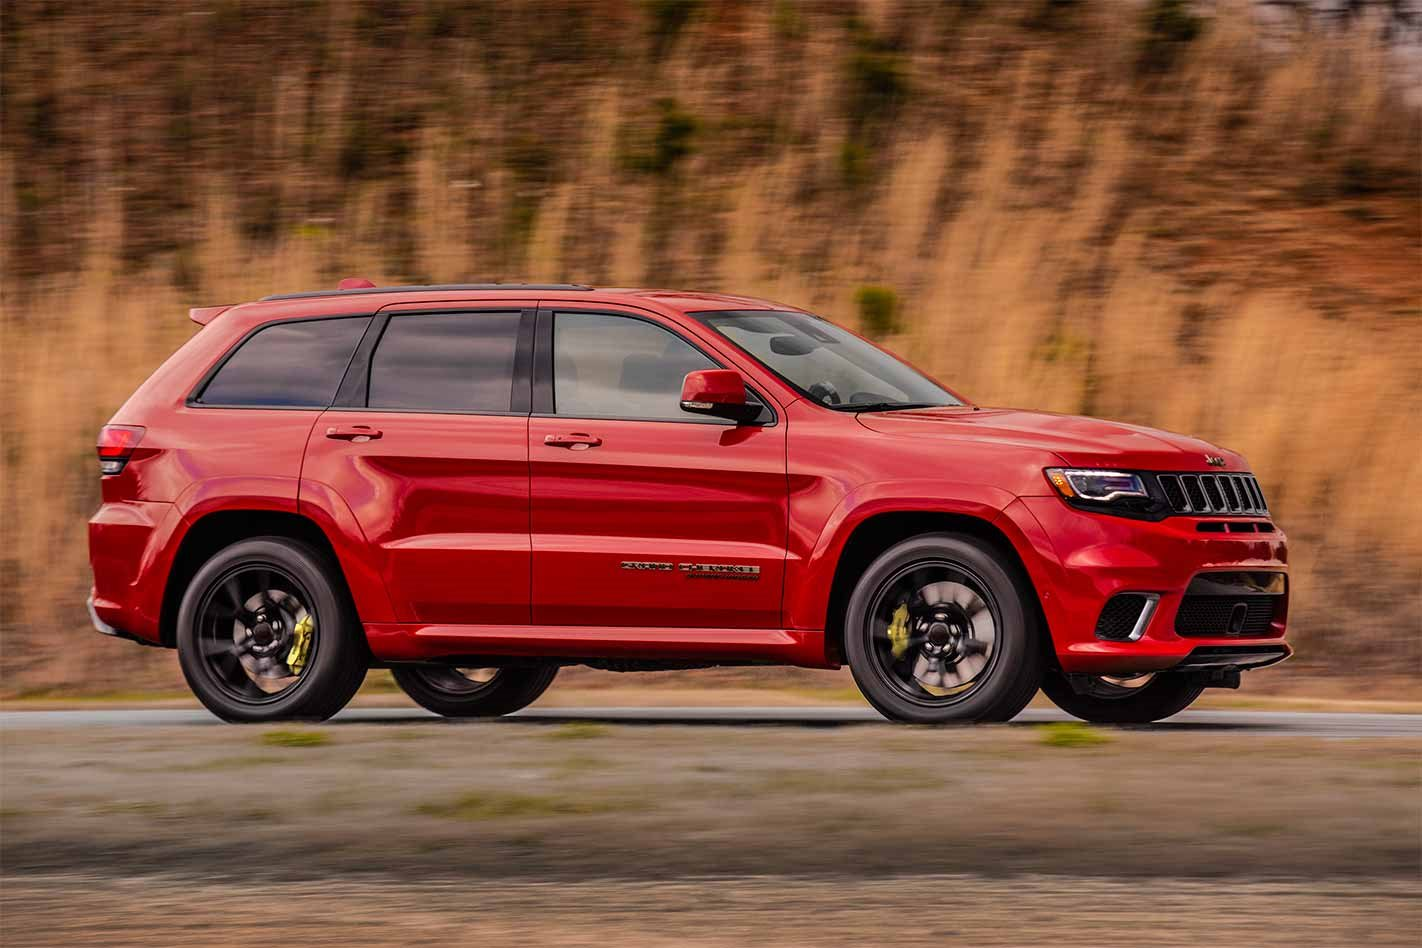 Jeep Grand Cherokee Reveals Its 707-Horsepower SUV